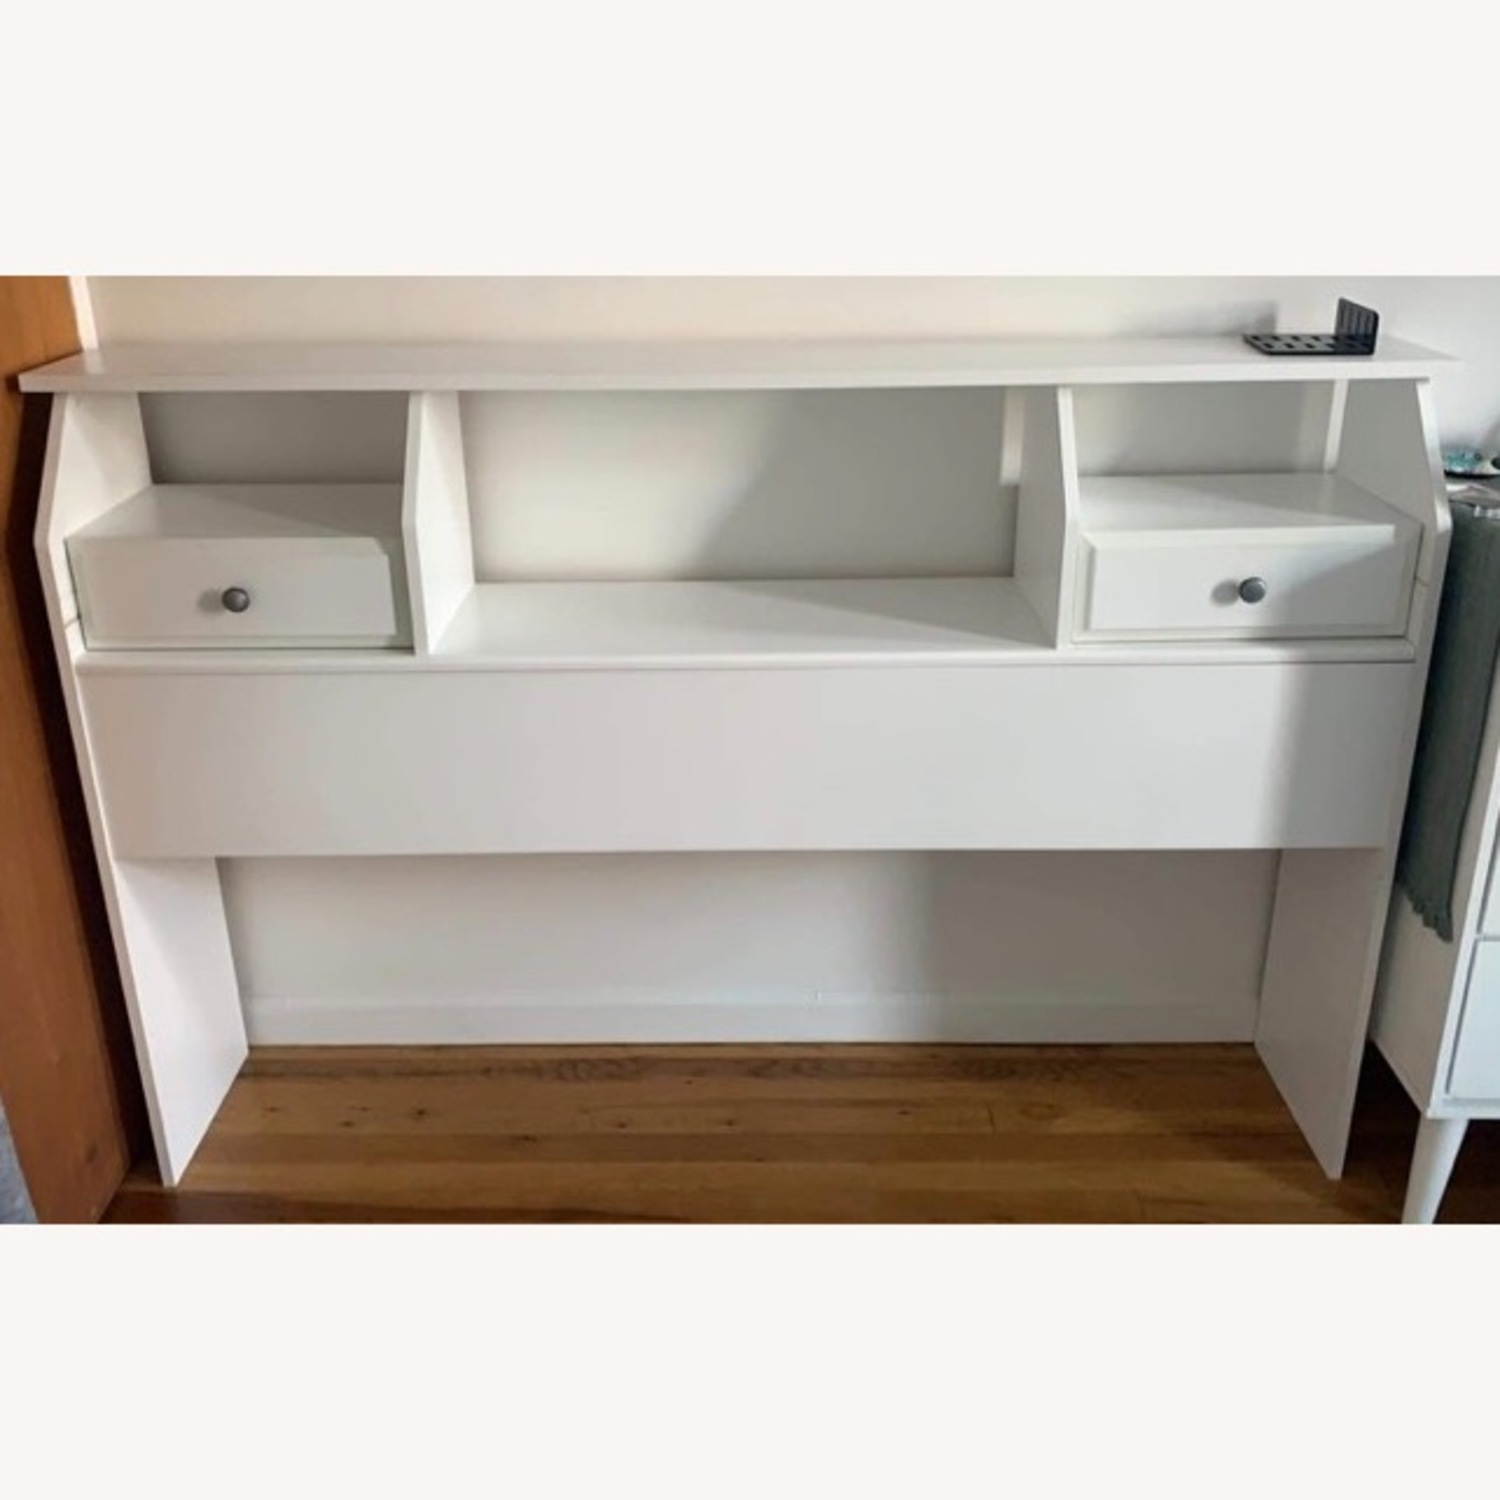 Queen/Full Headboard with Drawers (white wood) - image-2